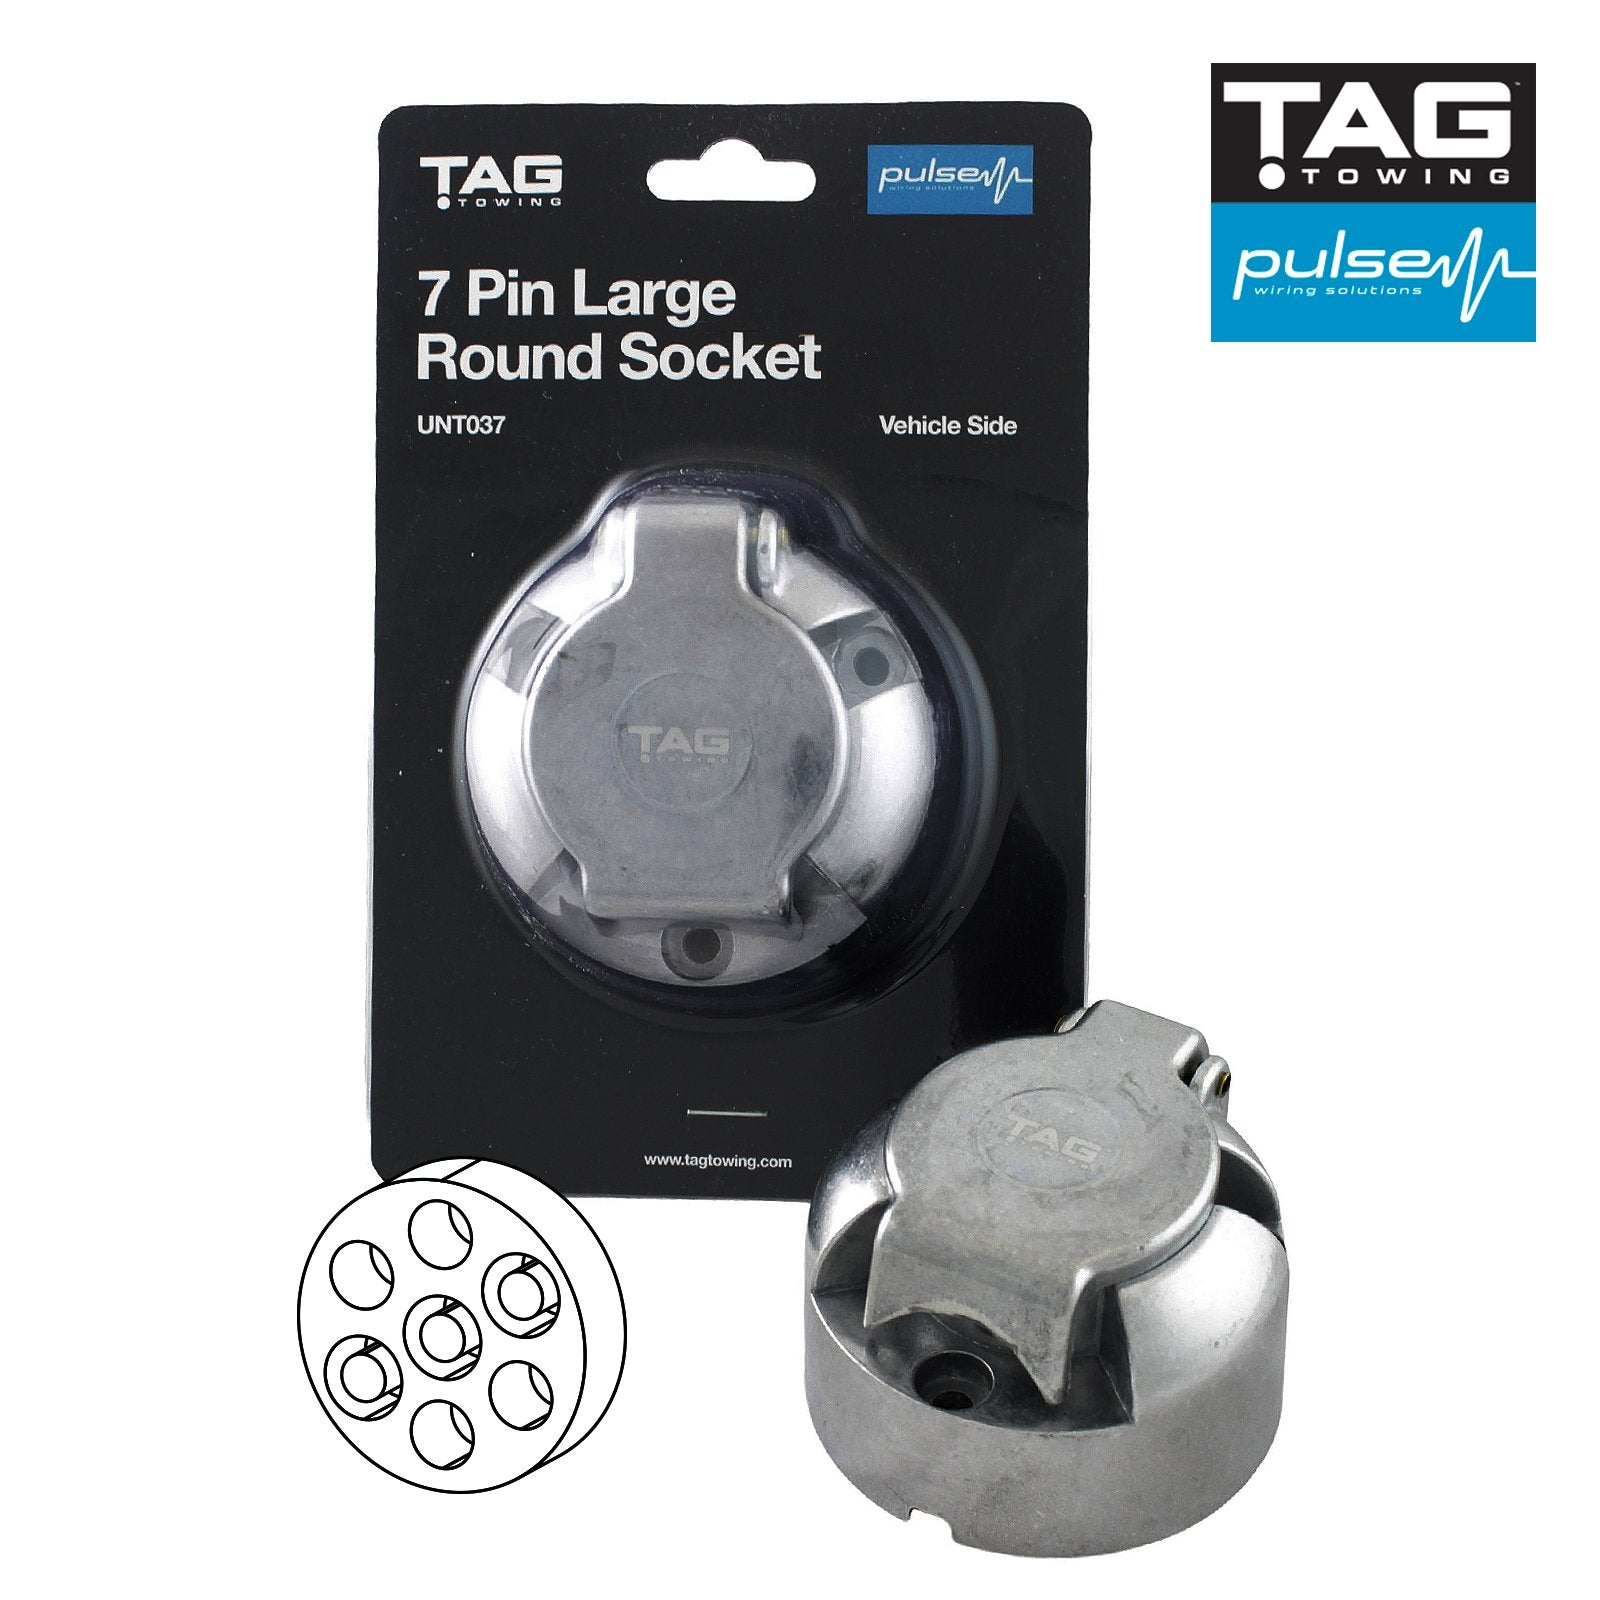 TAG Pulse 7 Pin Large Round Socket